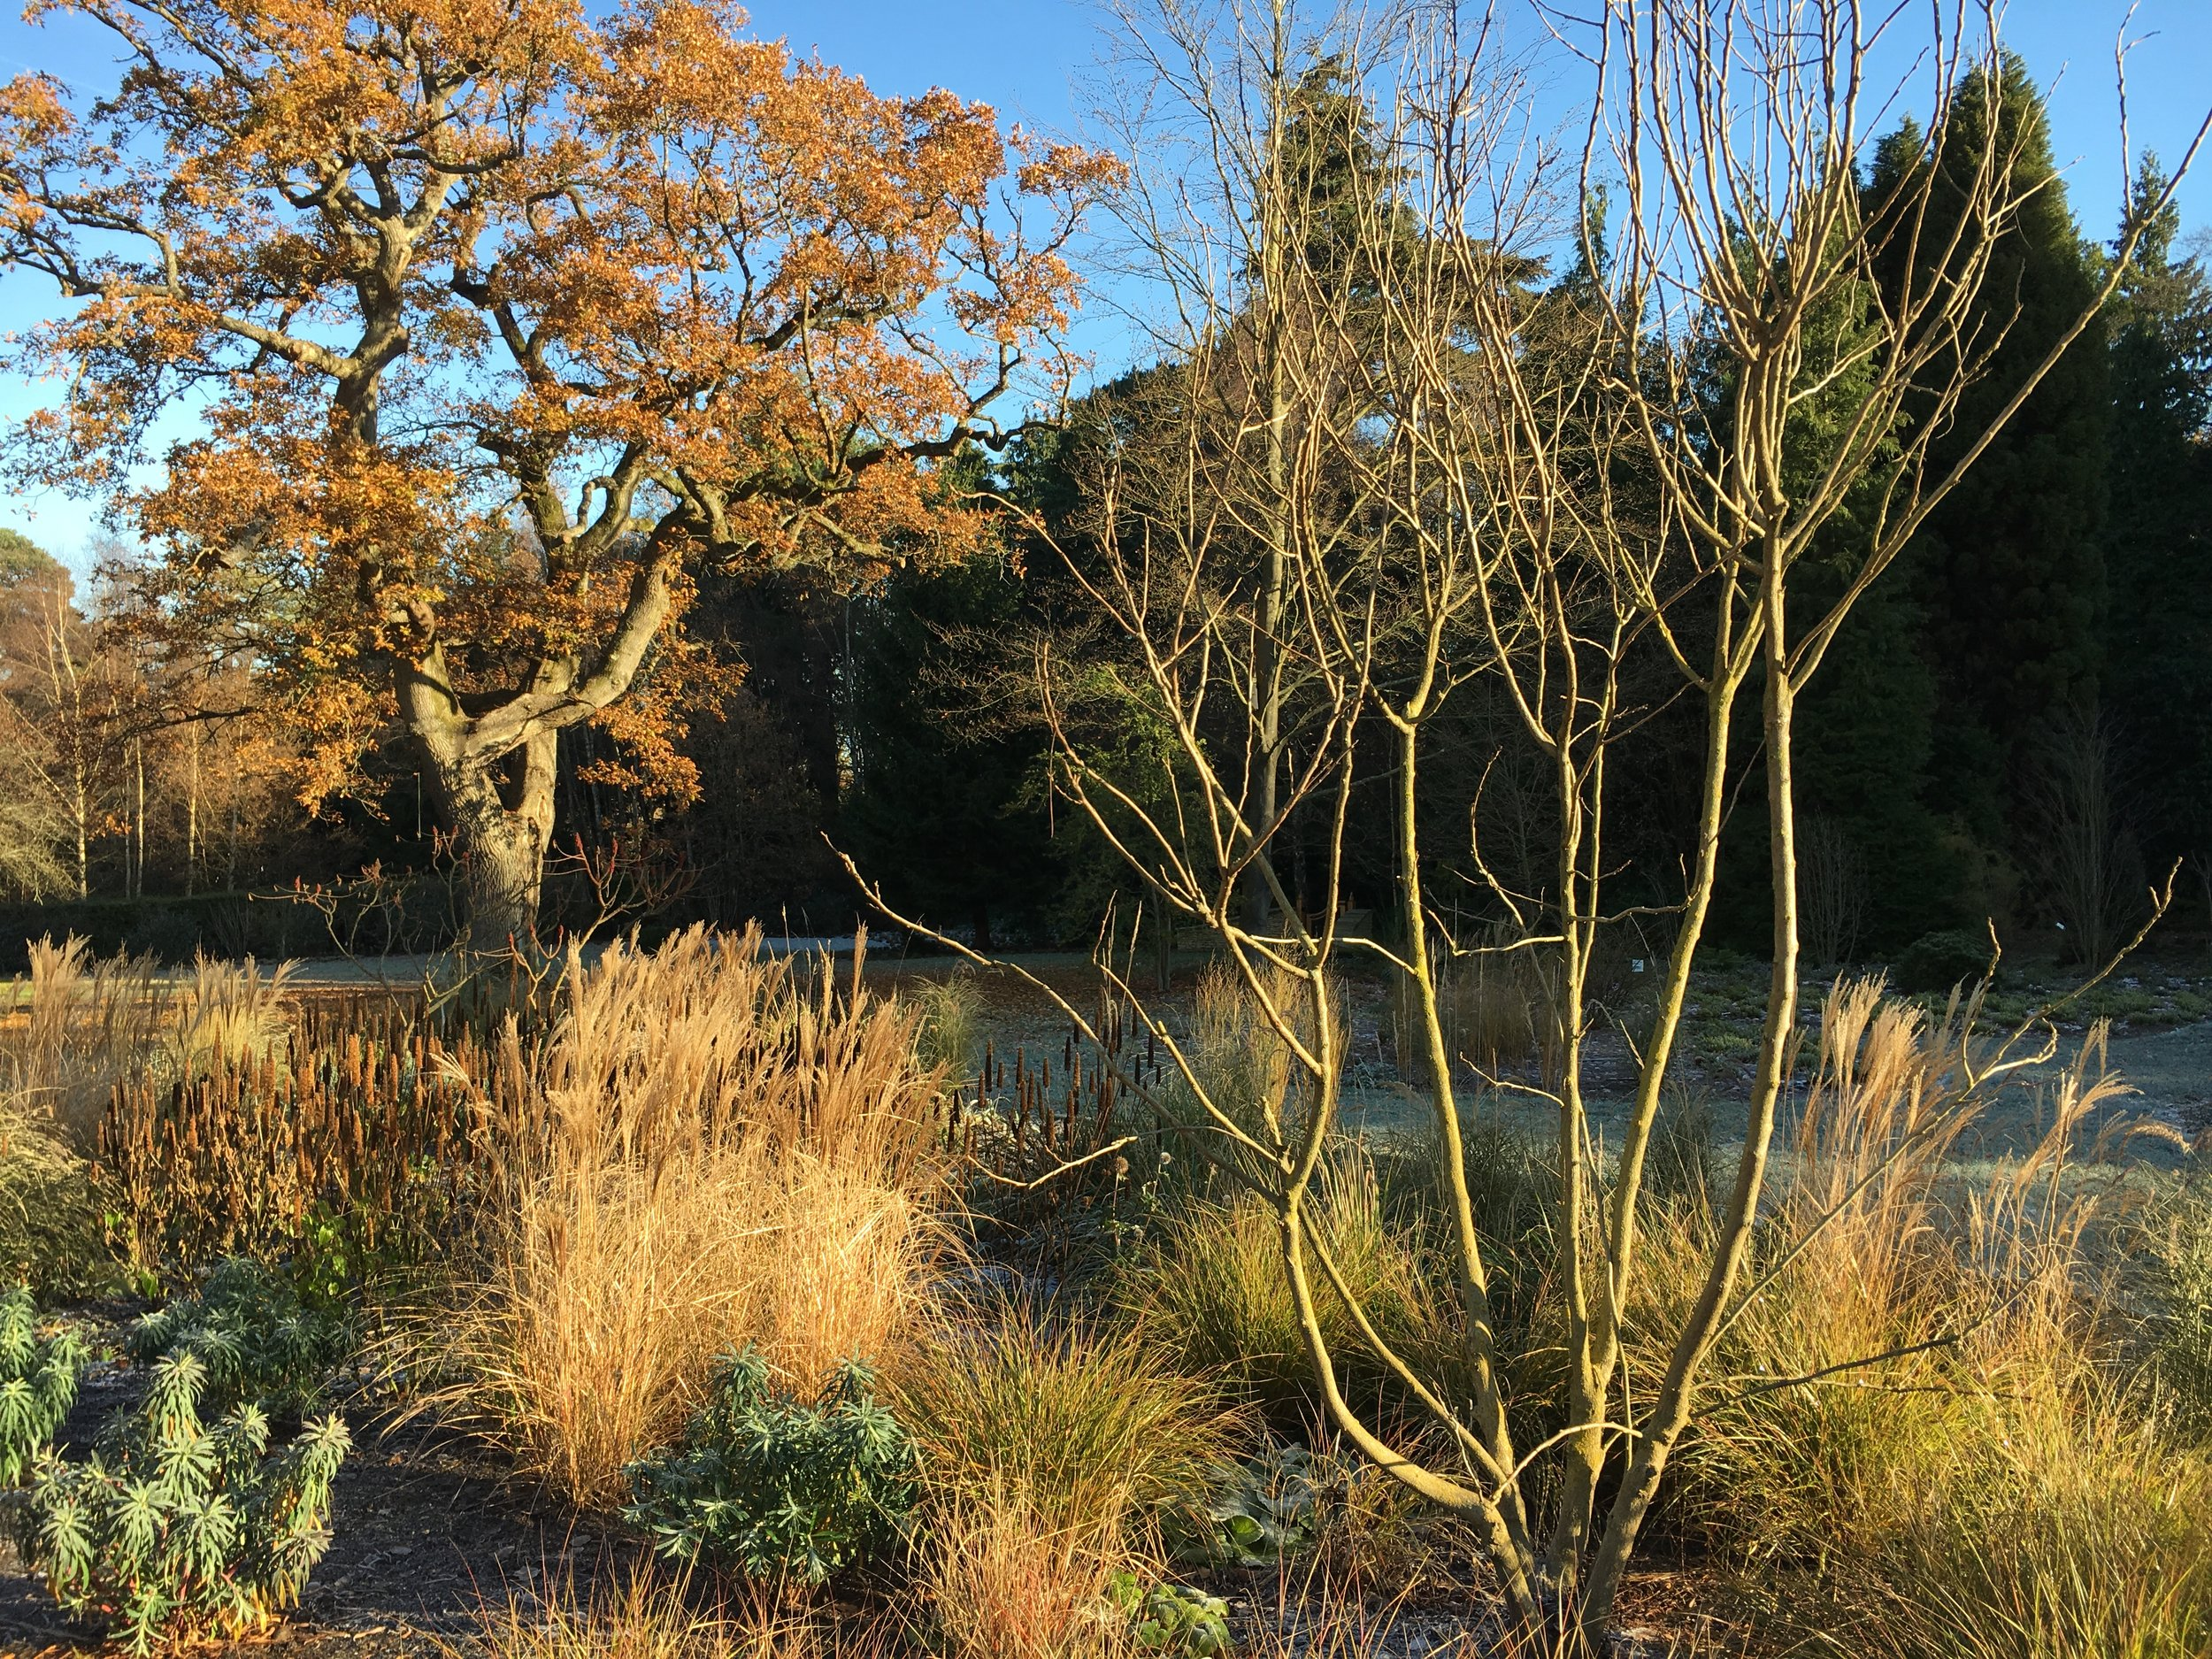 Euphorbia characias, Miscanthus malepartus and Agastache rugosa 'Liquorice White' look stunning in the autumn light